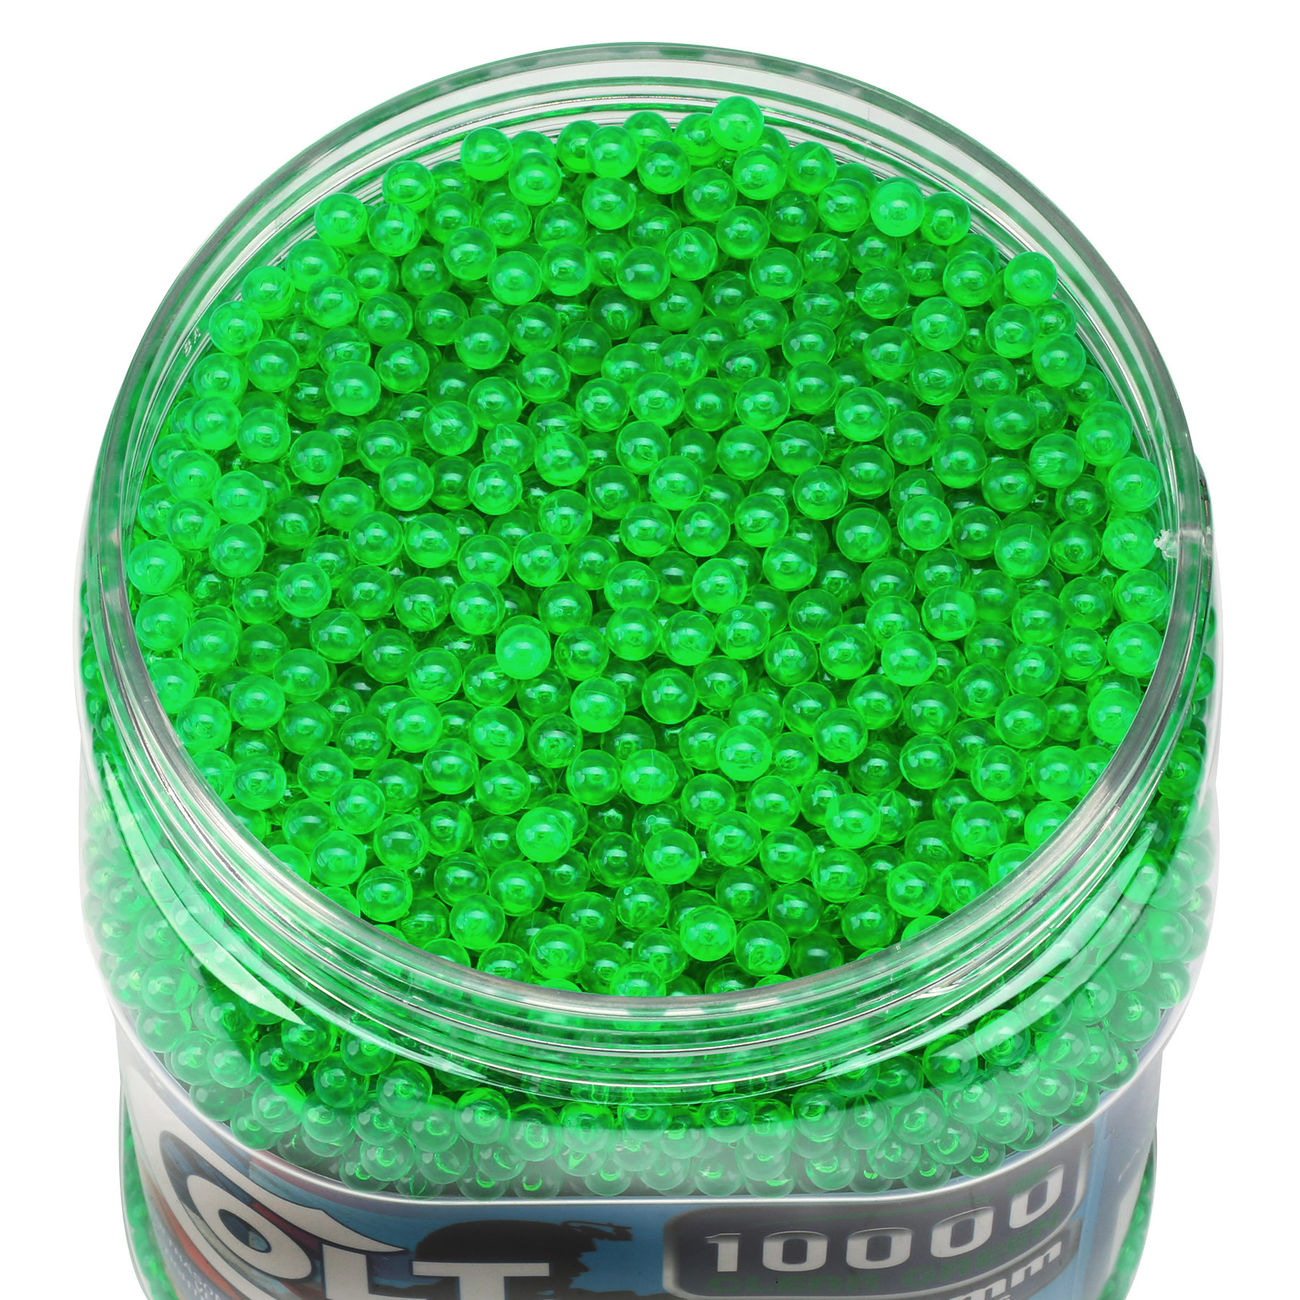 Cybergun Colt Competition Grade BBs 0,12g 10.000er Container Clear Green 1